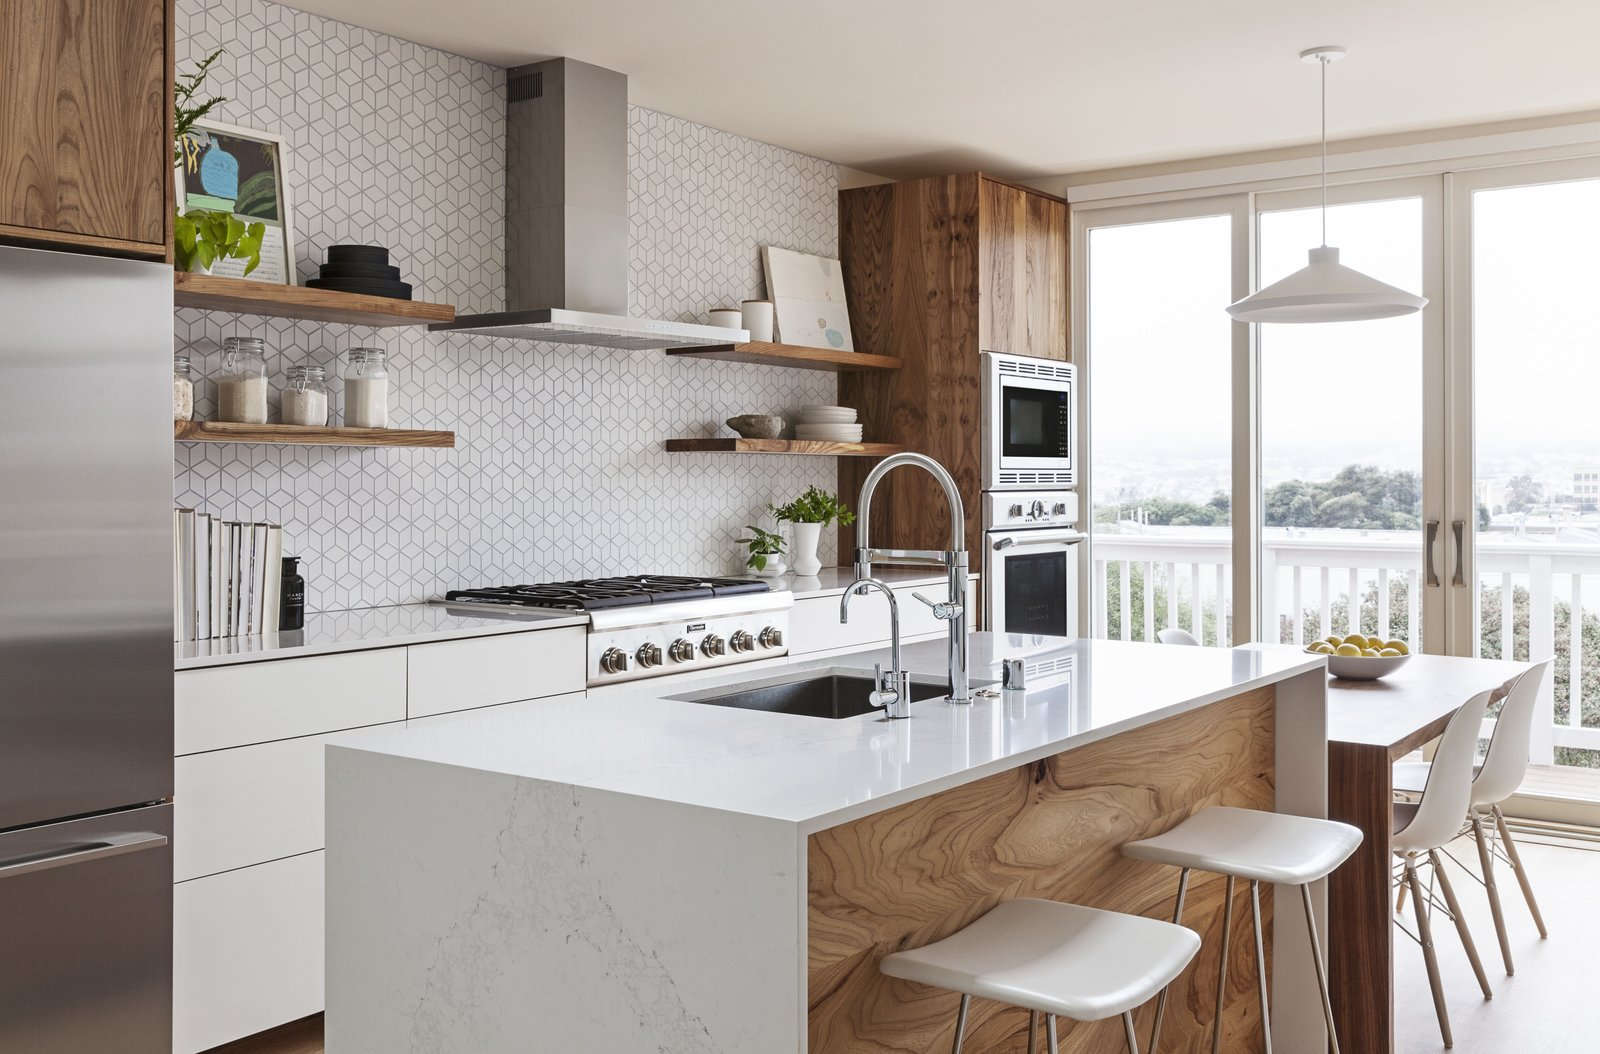 Kitchen, Range, Wood, Undermount, Open, Pendant, Ceramic Tile, Range Hood, Wall Oven, White, and Refrigerator  Best Kitchen Range Open Range Hood Undermount Photos from 8 Envy-Inducing Kitchens and Baths Posted by Our Community